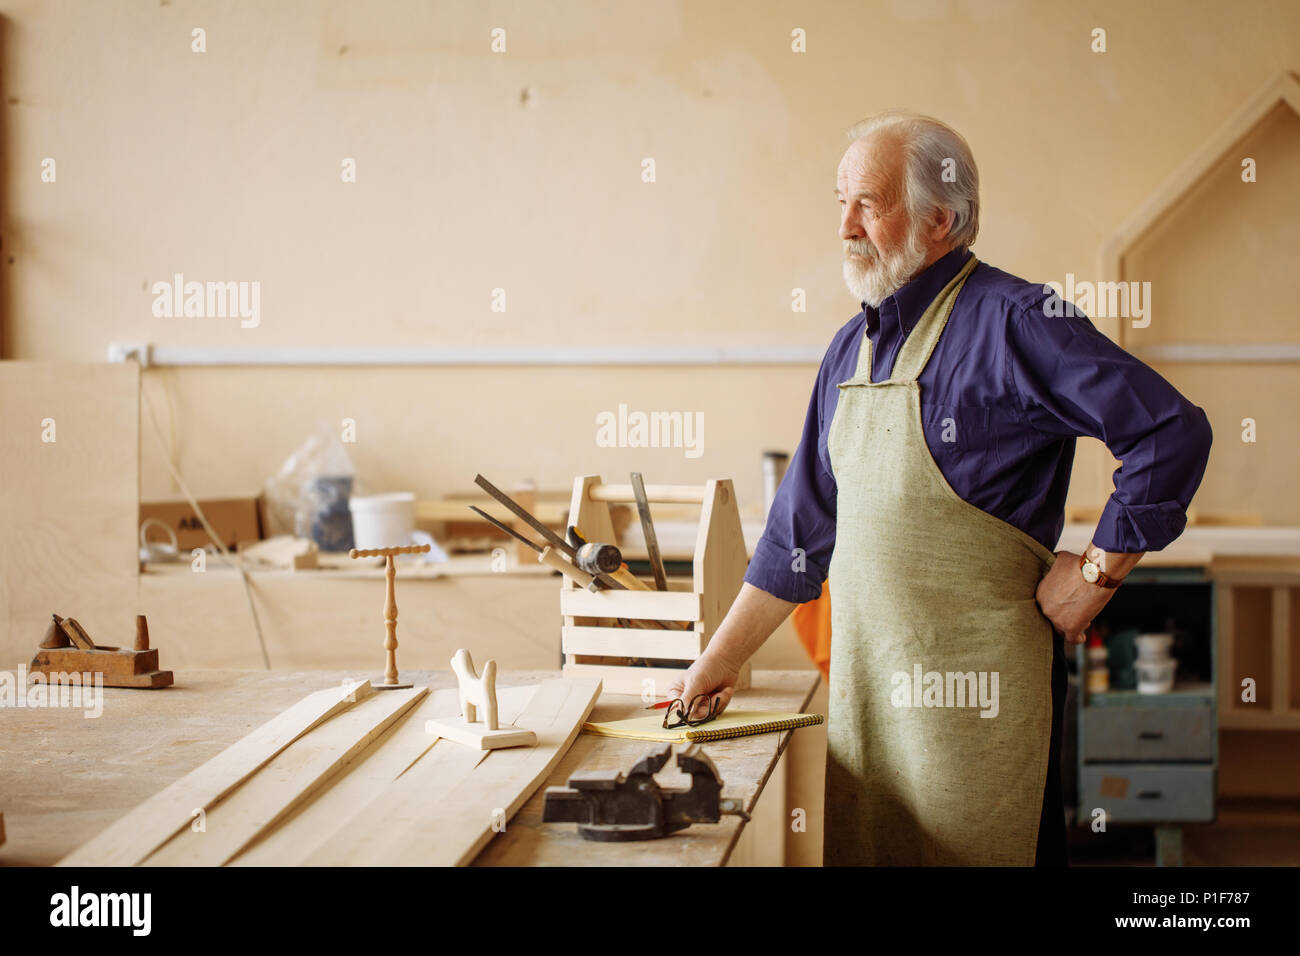 close up side view image of tired pensive pensioner in the repair shop - Stock Image